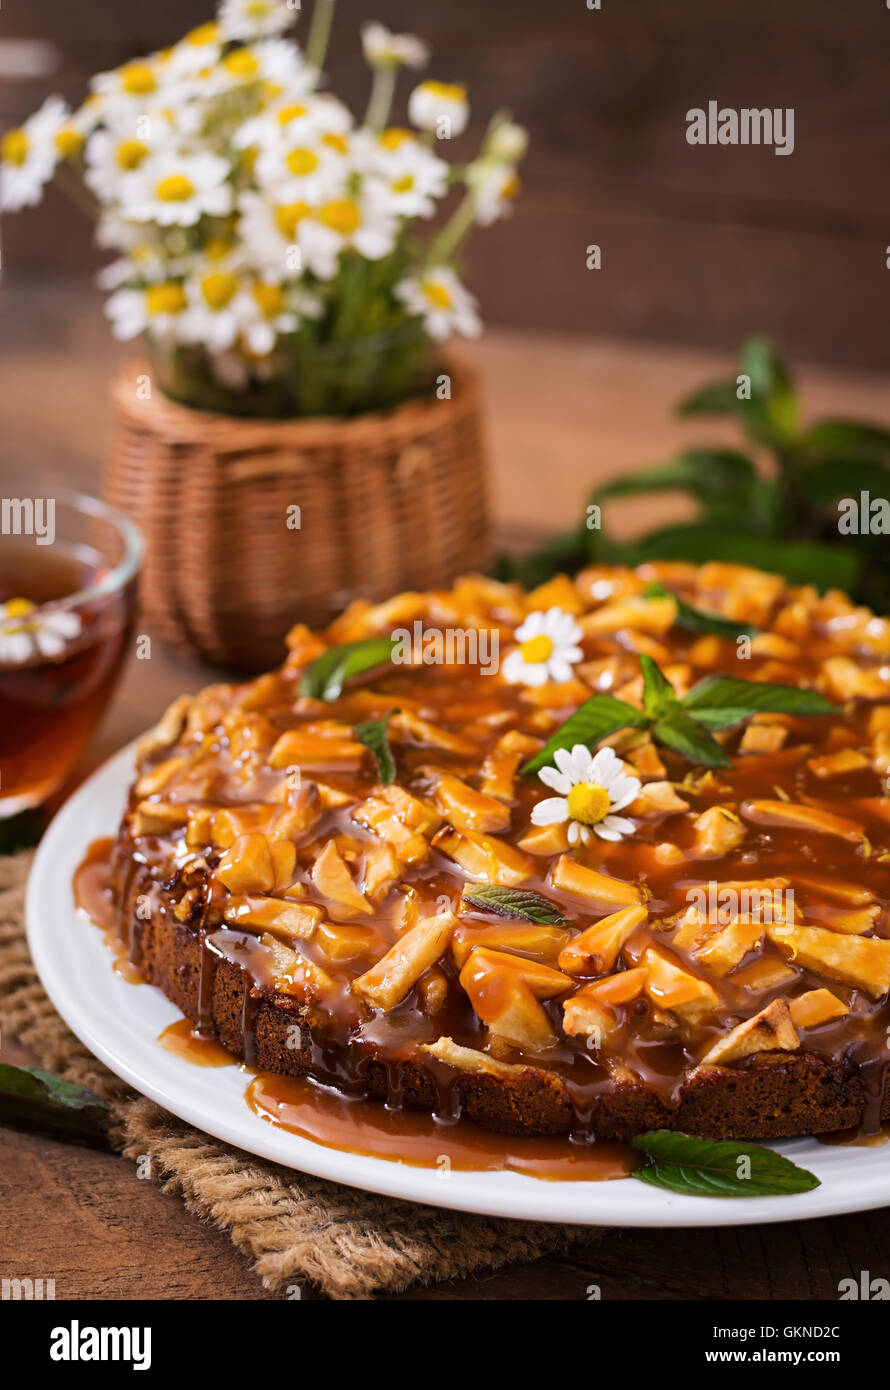 Apple pie with caramel sauce on a wooden background - Stock Image